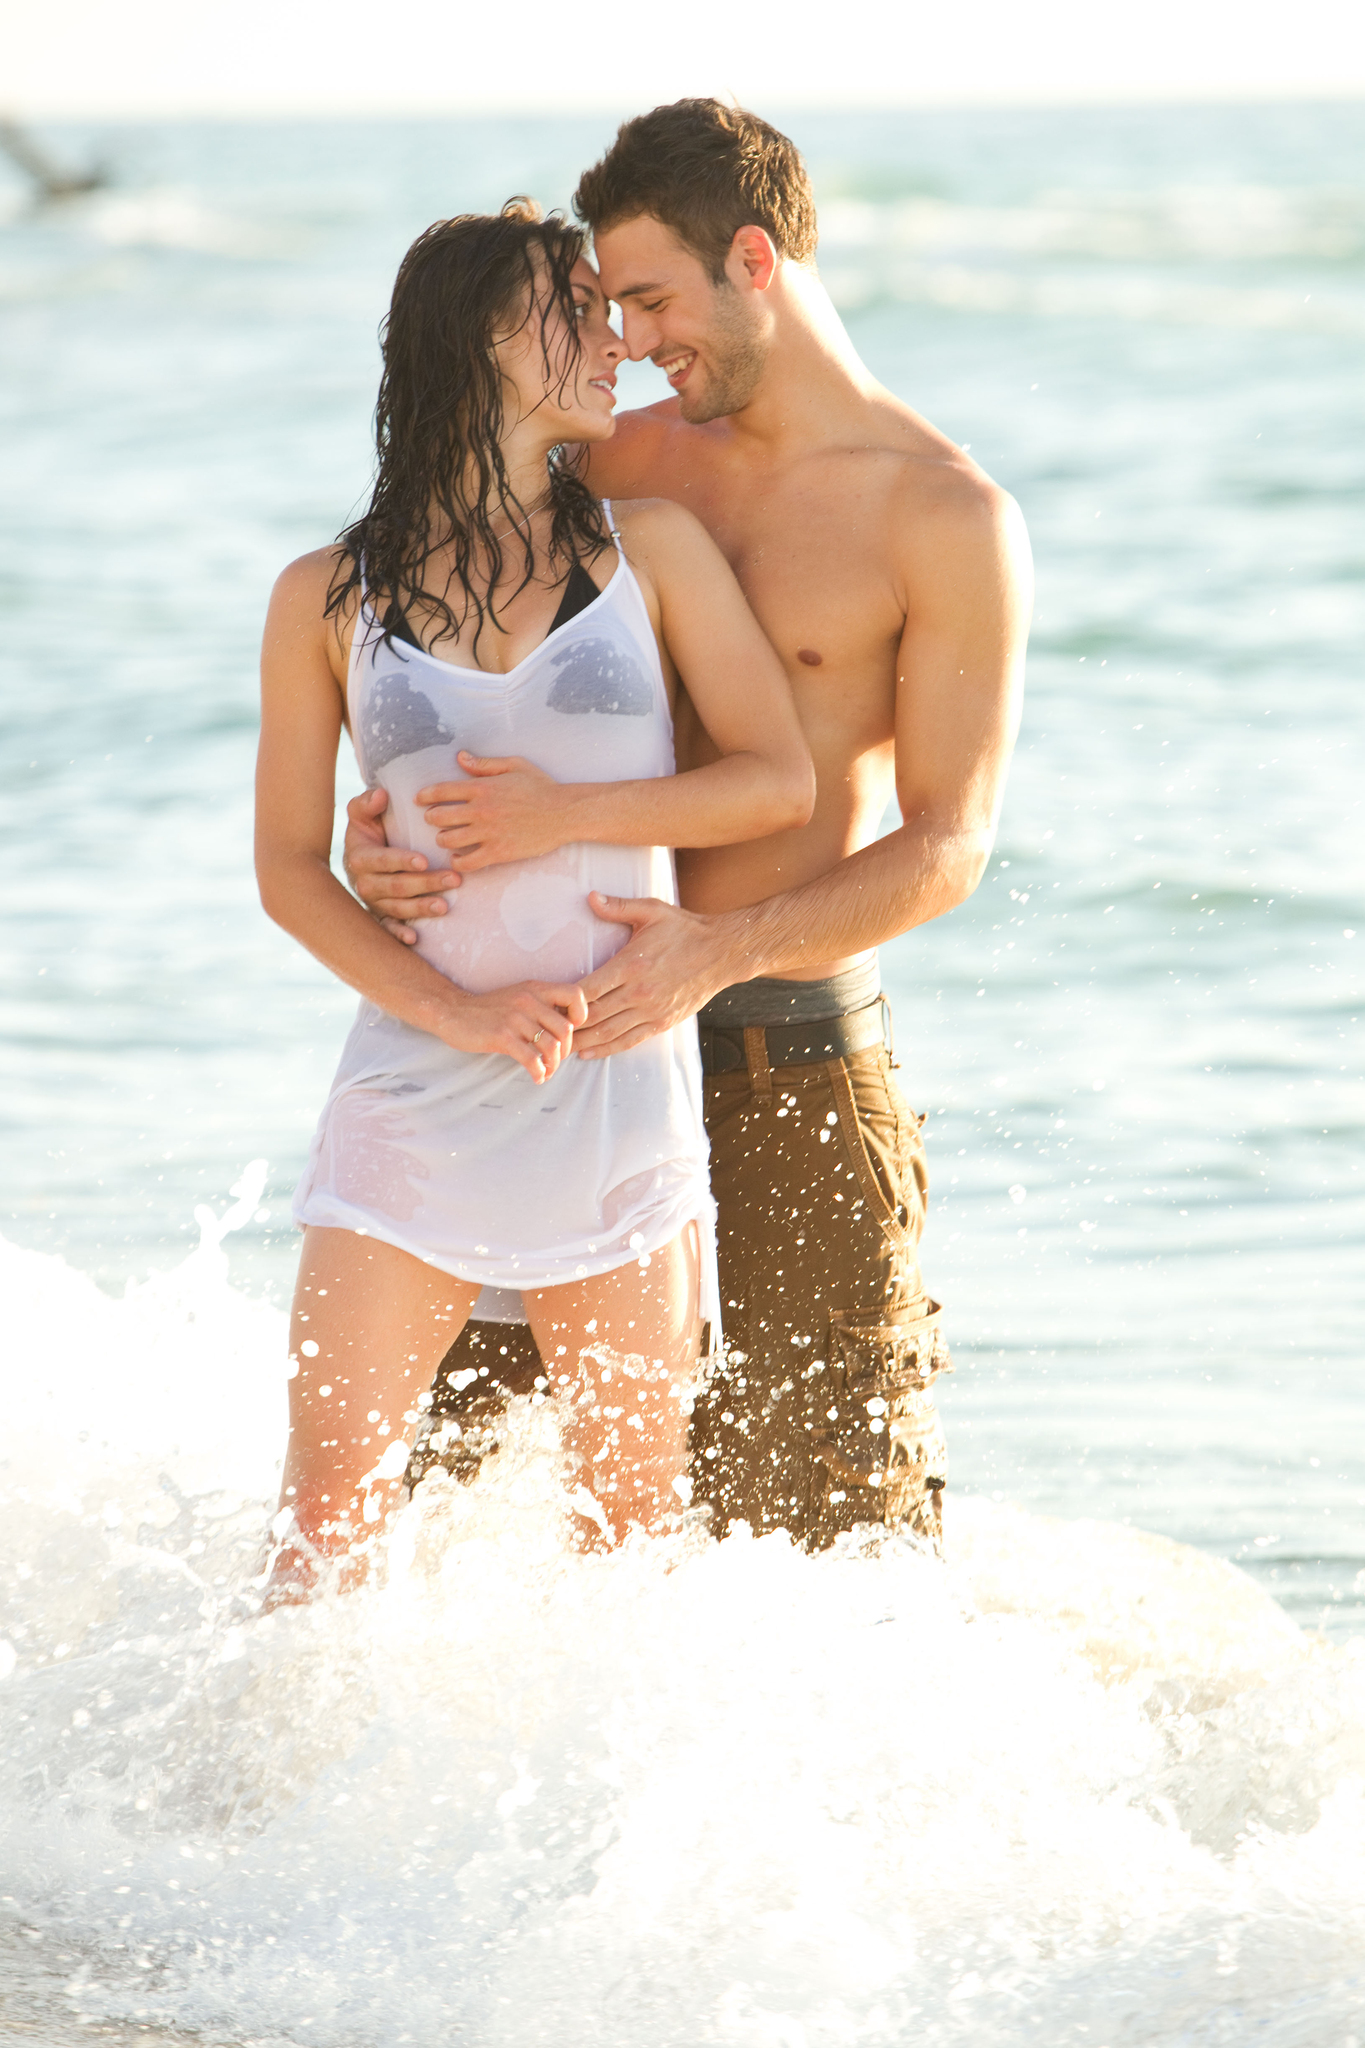 Kathryn-McCormick-and-Ryan-Guzman-in-Step-Up-Revolution-wallpaper-wp426884-1